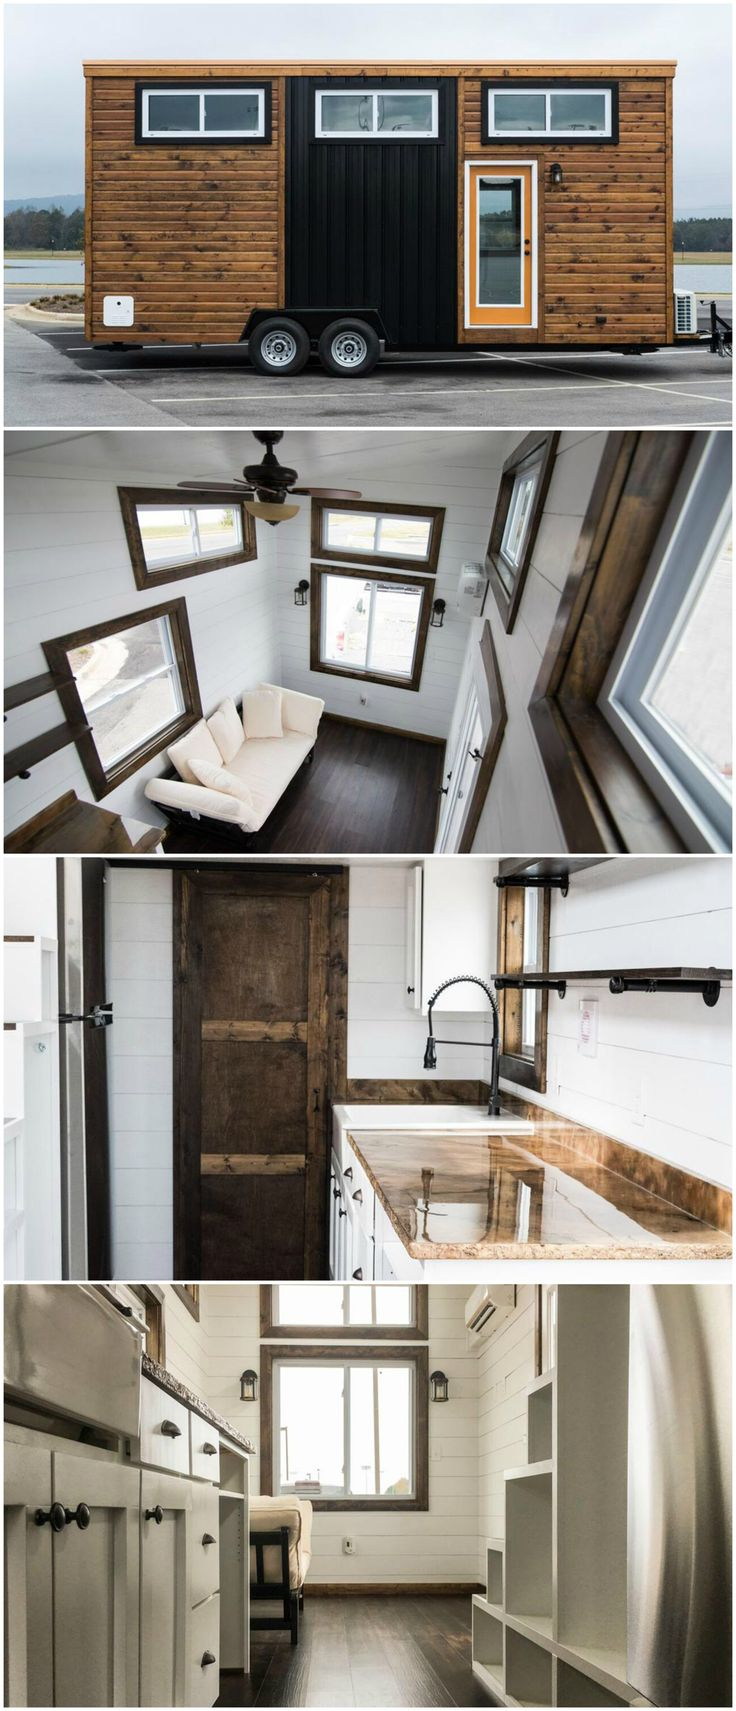 Fernweh is a beautiful tiny house built by Harmony Tiny Homes. The tiny house is a 24-foot home on wheels with spacious living room and galley kitchen. The kitchen has a custom made epoxy countertop with desk area, a white apron sink, and open shelves.  The exterior combines dark stained wood and a black metal accent piece. The back and sides are all black metal.